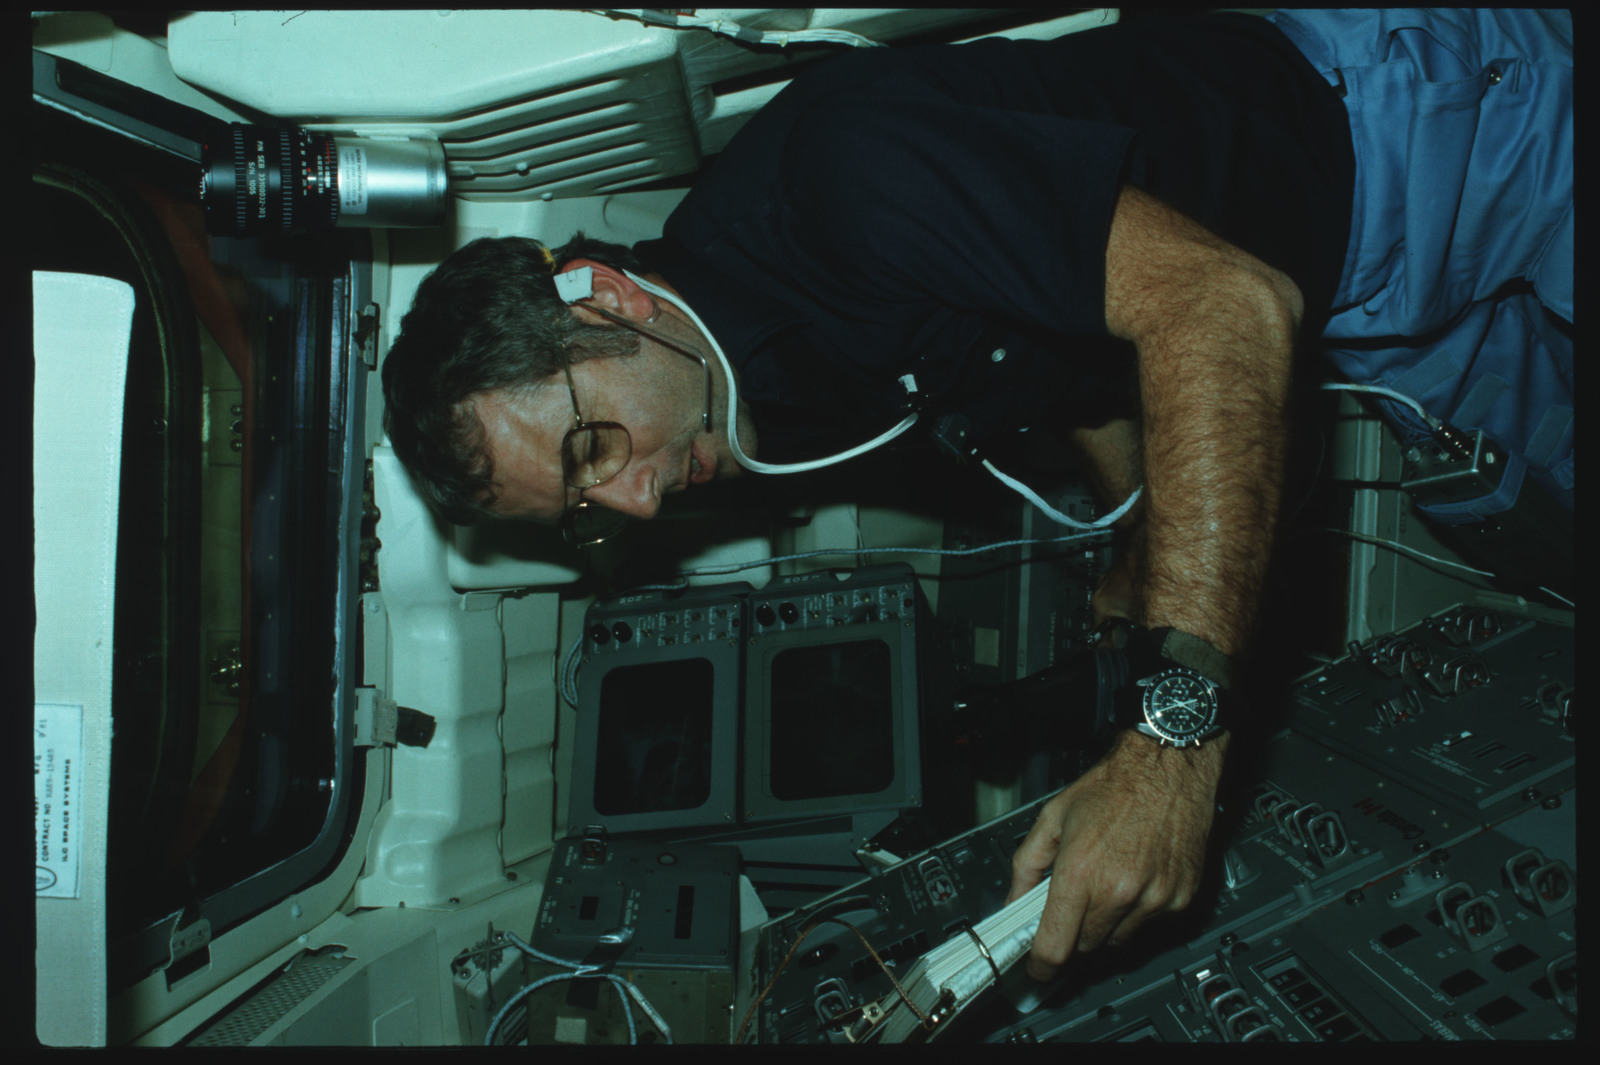 S02-02-876 - STS-002 - Pilot Truly reviews checklist and monitors CCTV screens on Aft Flight Deck